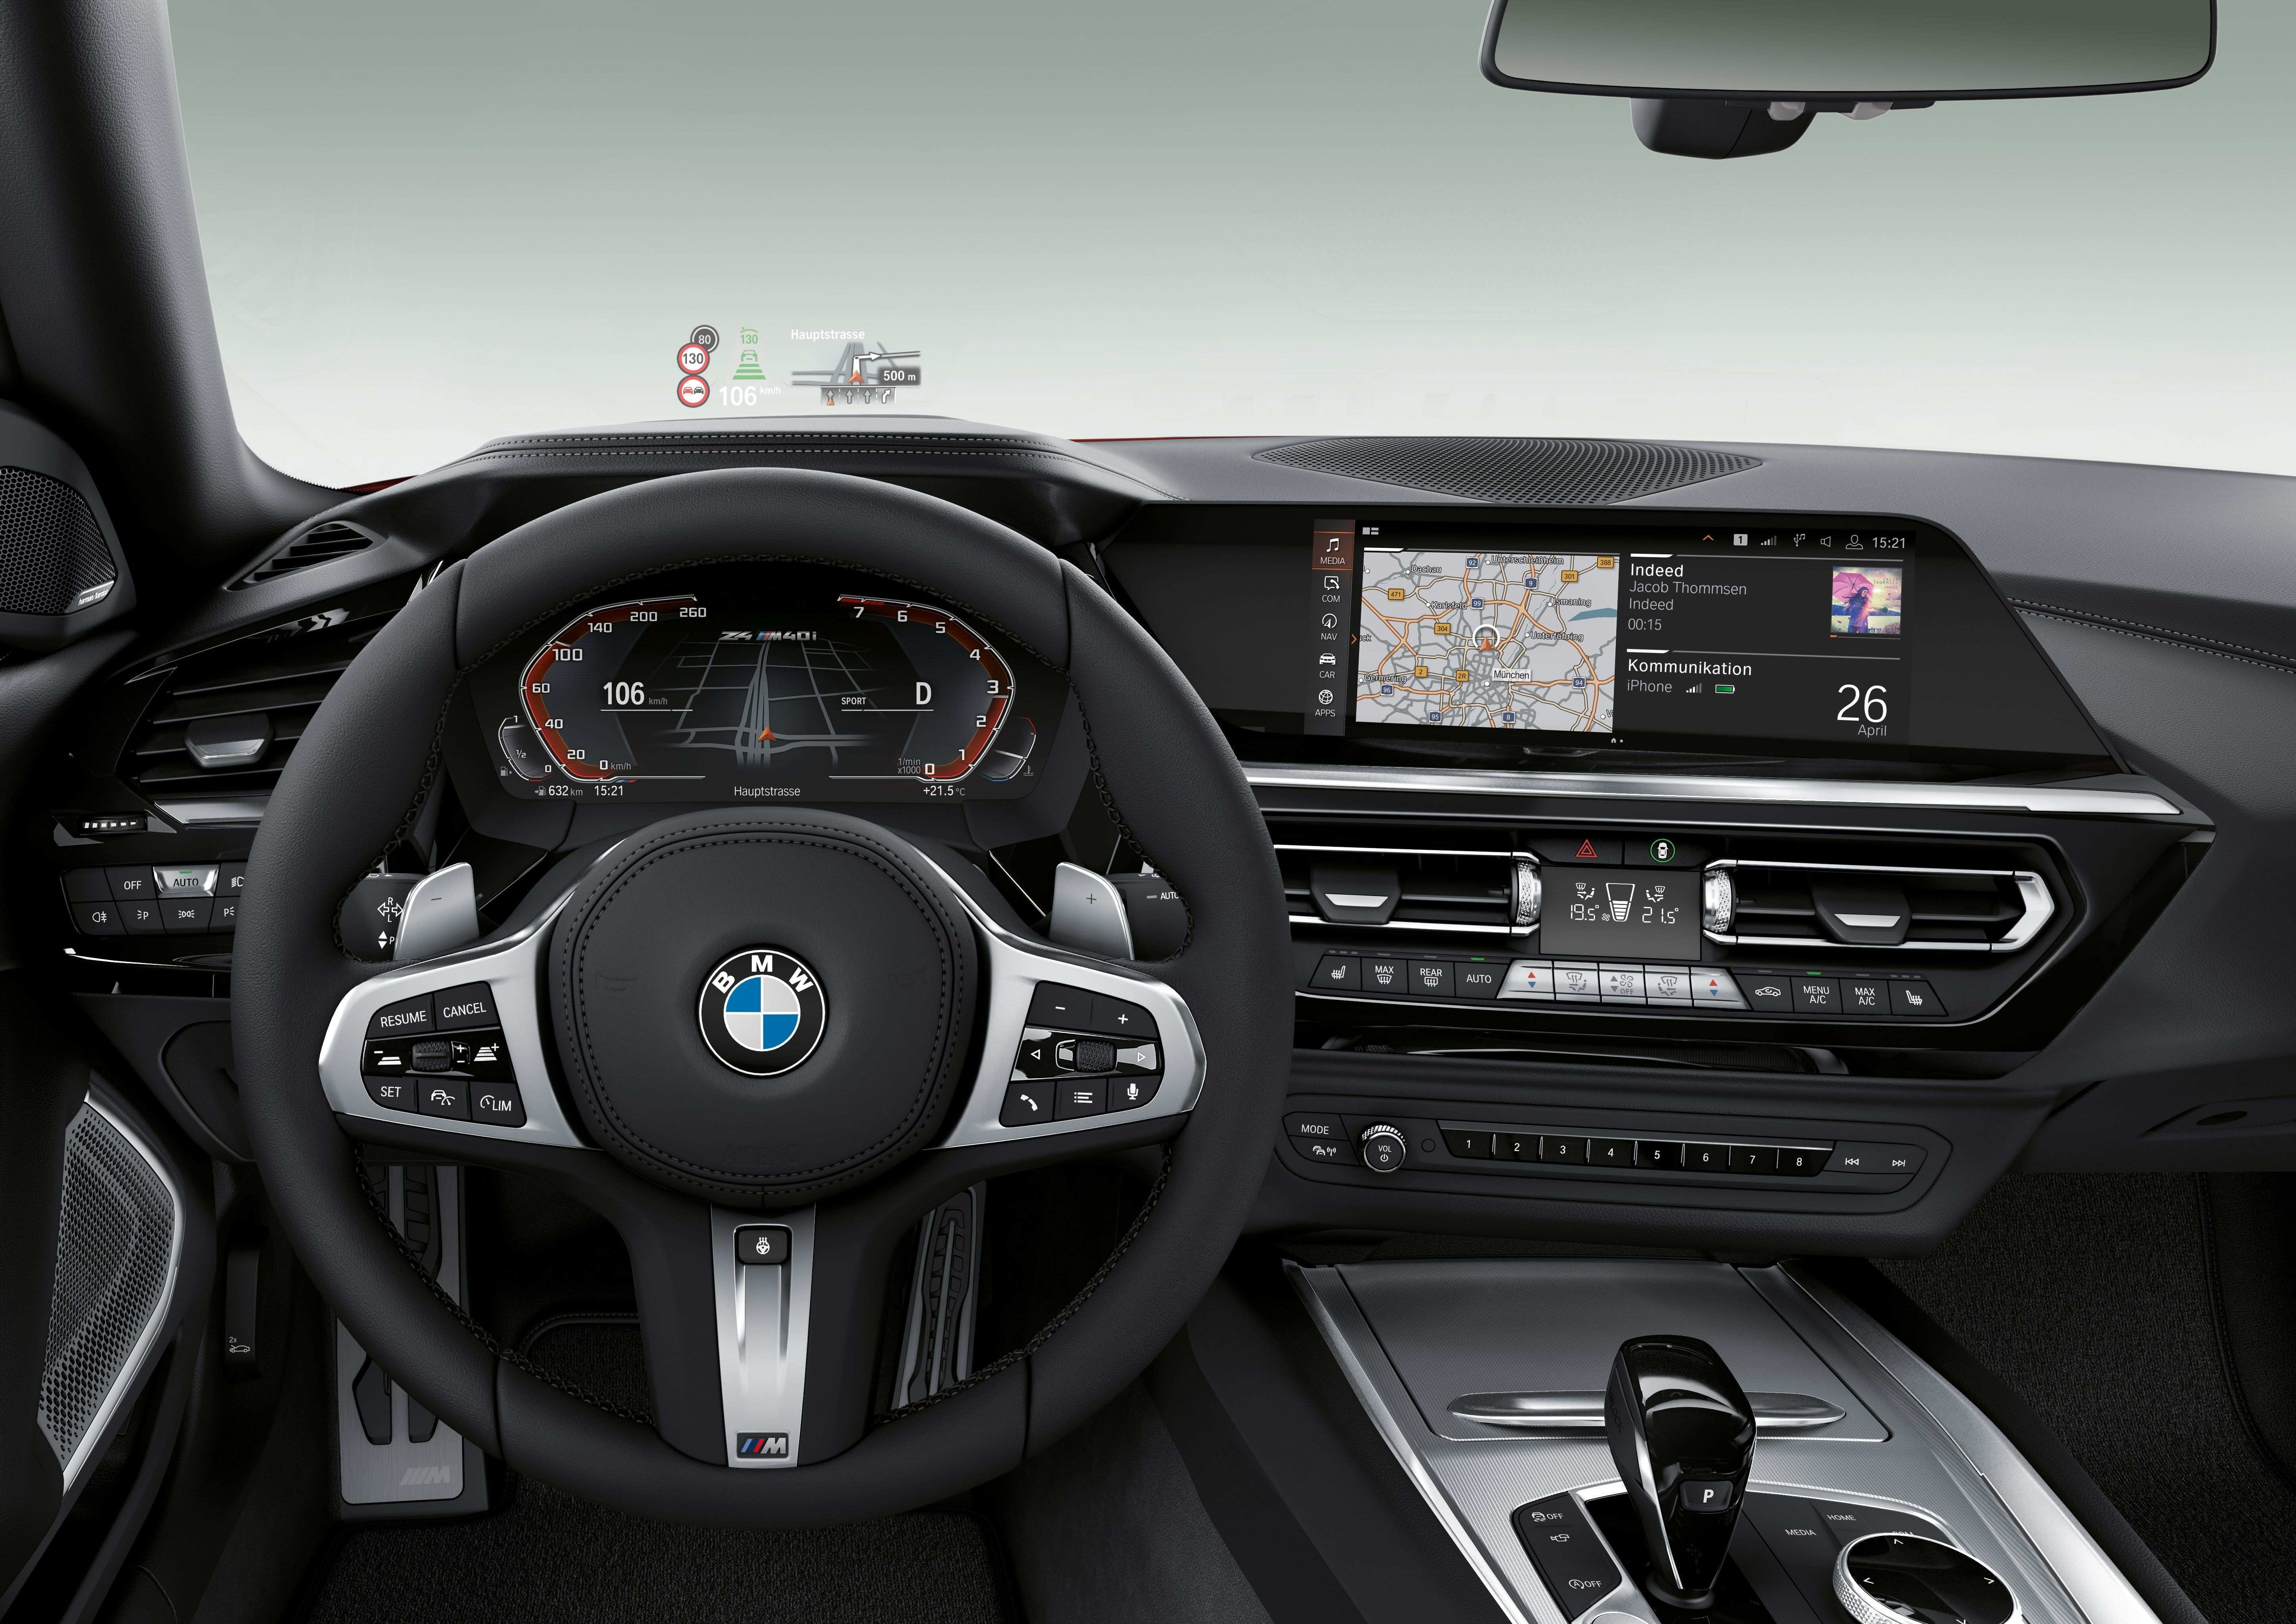 97 New 2019 Bmw Terrain Interior History by 2019 Bmw Terrain Interior